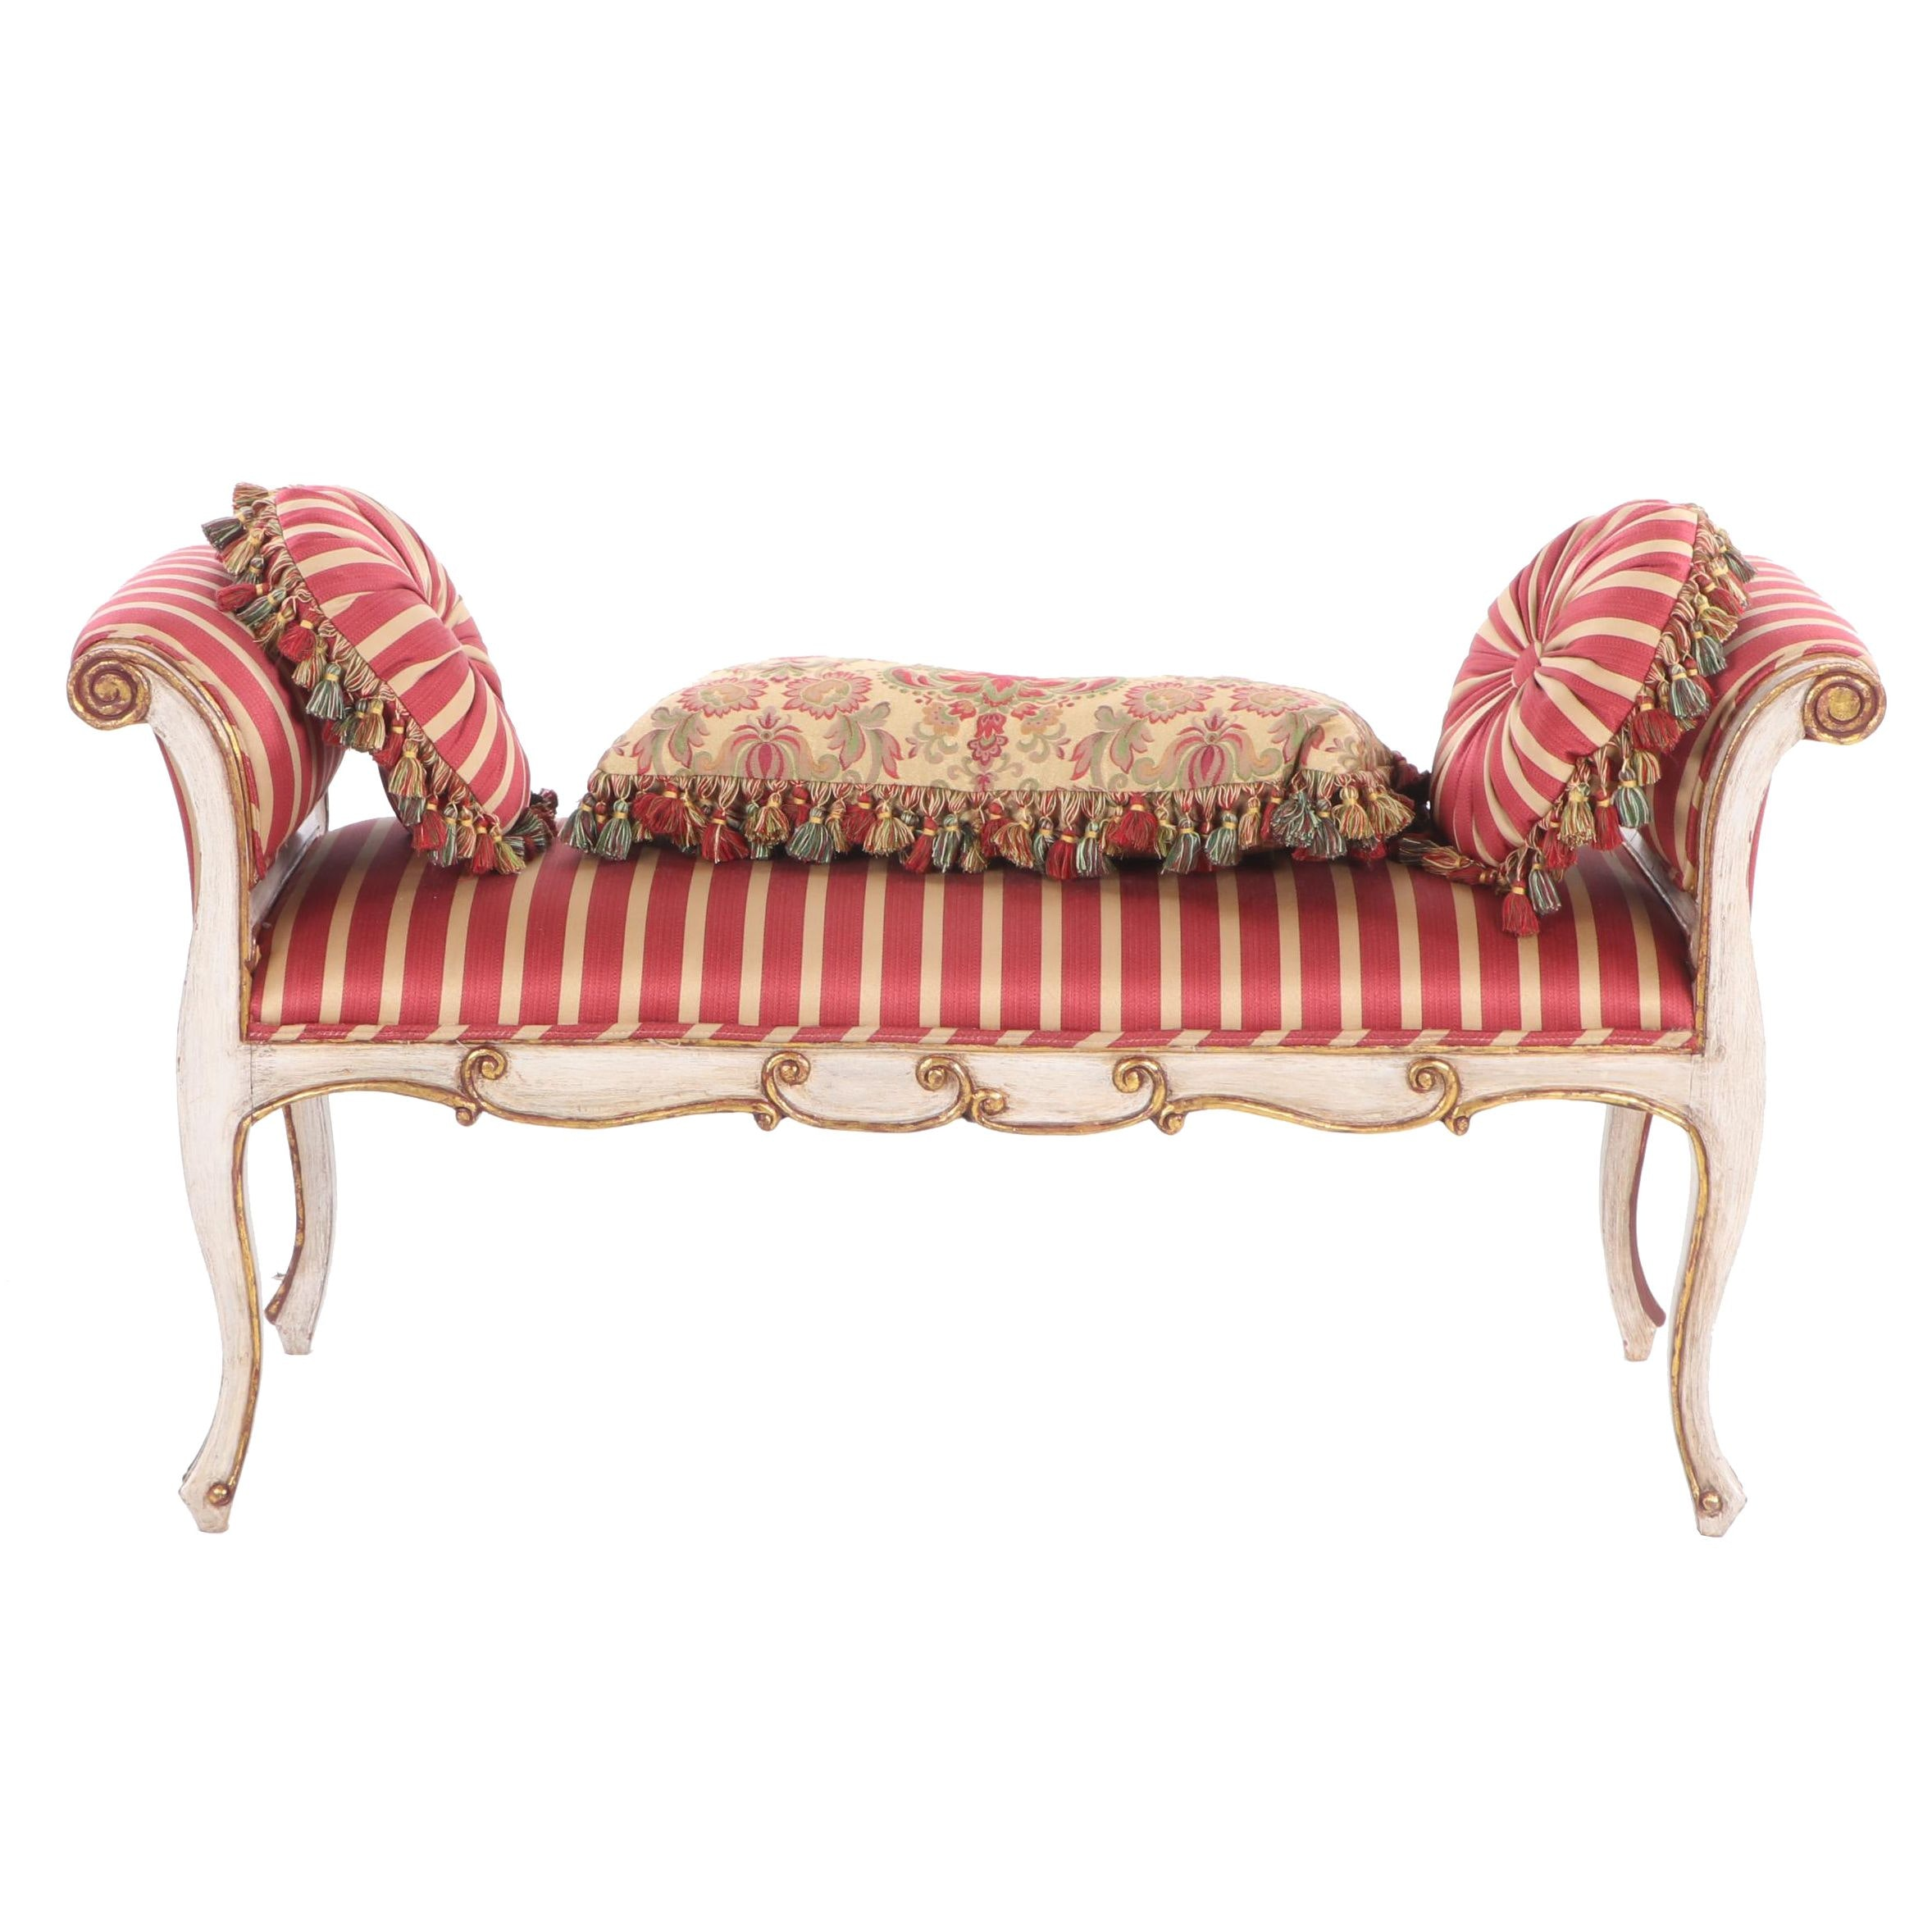 French Provincial Style Painted Wood Upholstered Bed Bench, Mid 20th Century